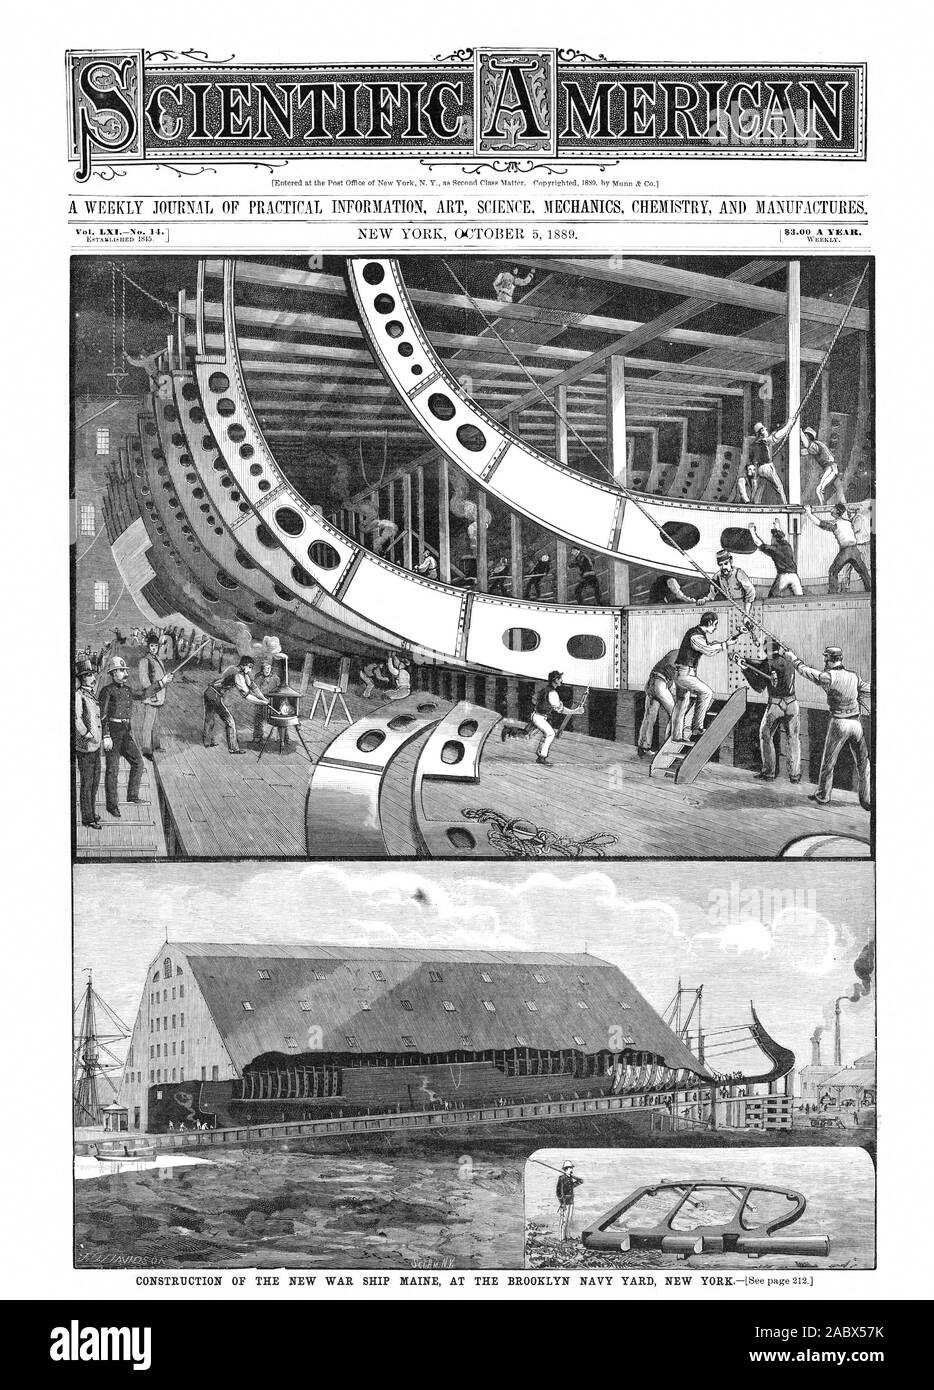 """CONSTRUCTION OF THE NEW WAR SHIP MAINE AT THE BROOKLYN NAVY YARD NEW YORK[See page 212. $3.00 A YEAR. %MOW 1 IMO """", scientific american, 1889-10-05 Stock Photo"""